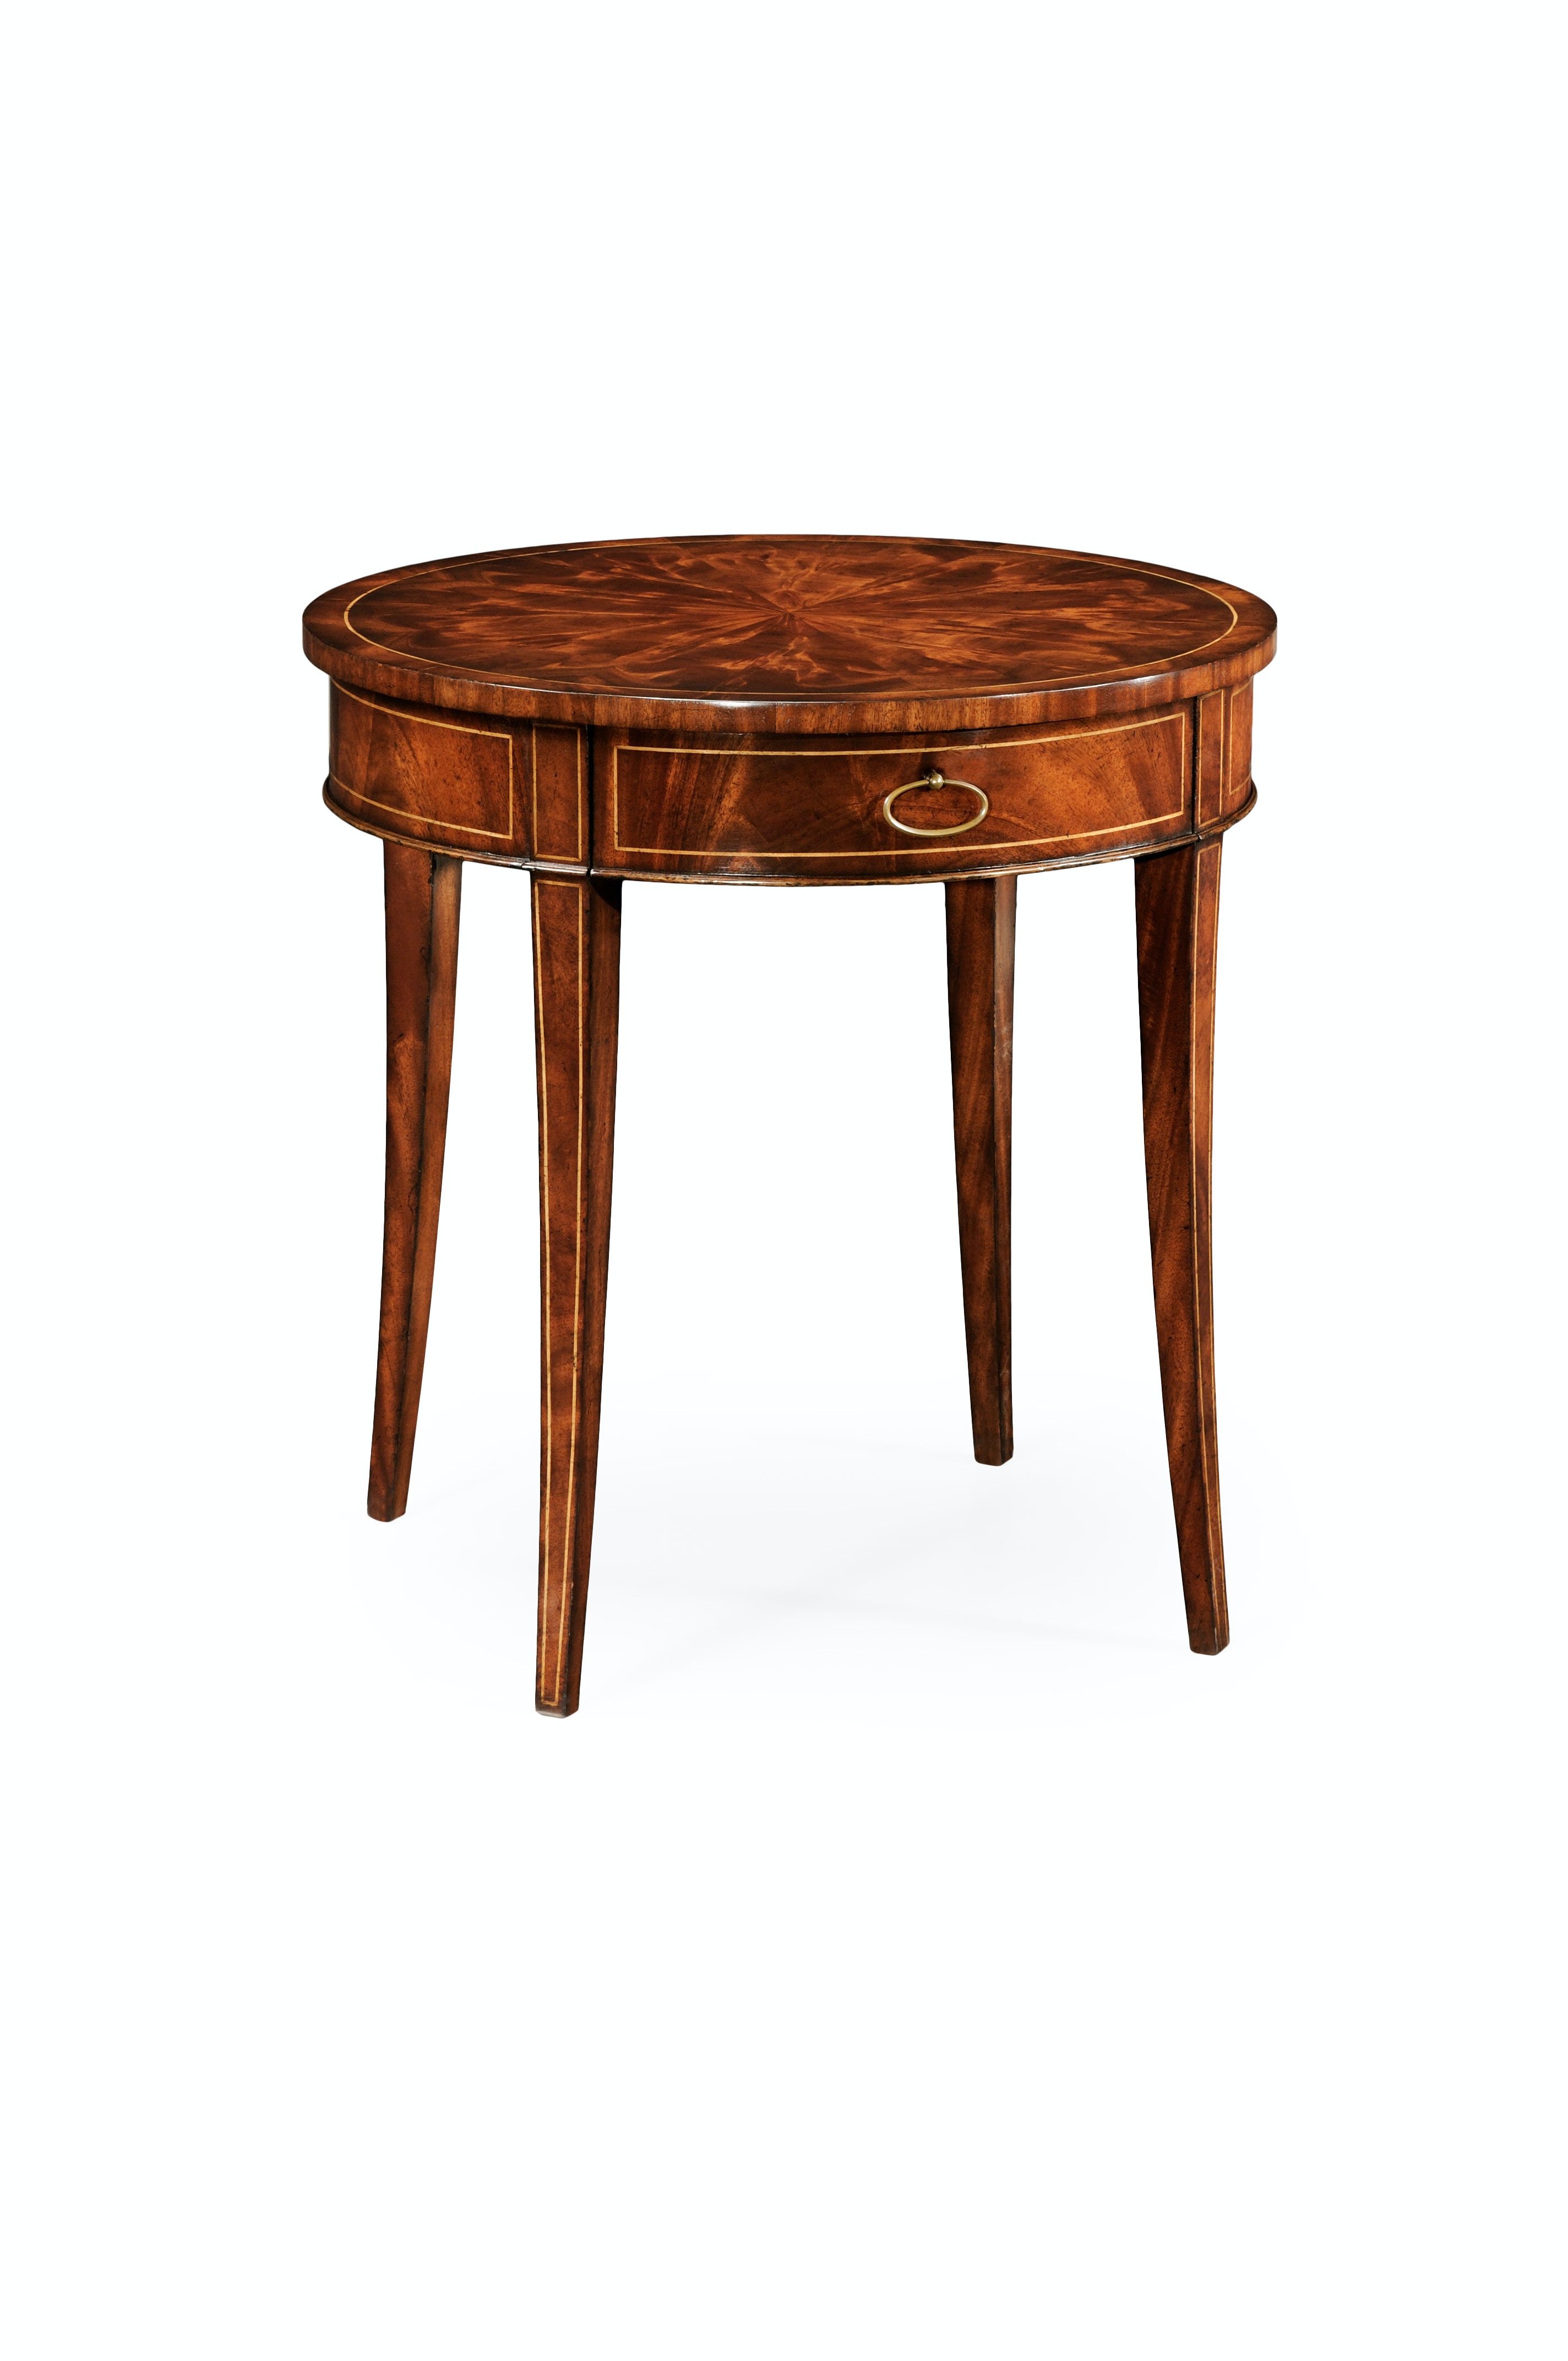 mahogany side tables living room painting my ideas jonathan charles round table fine stringing 494003 lam at louis shanks